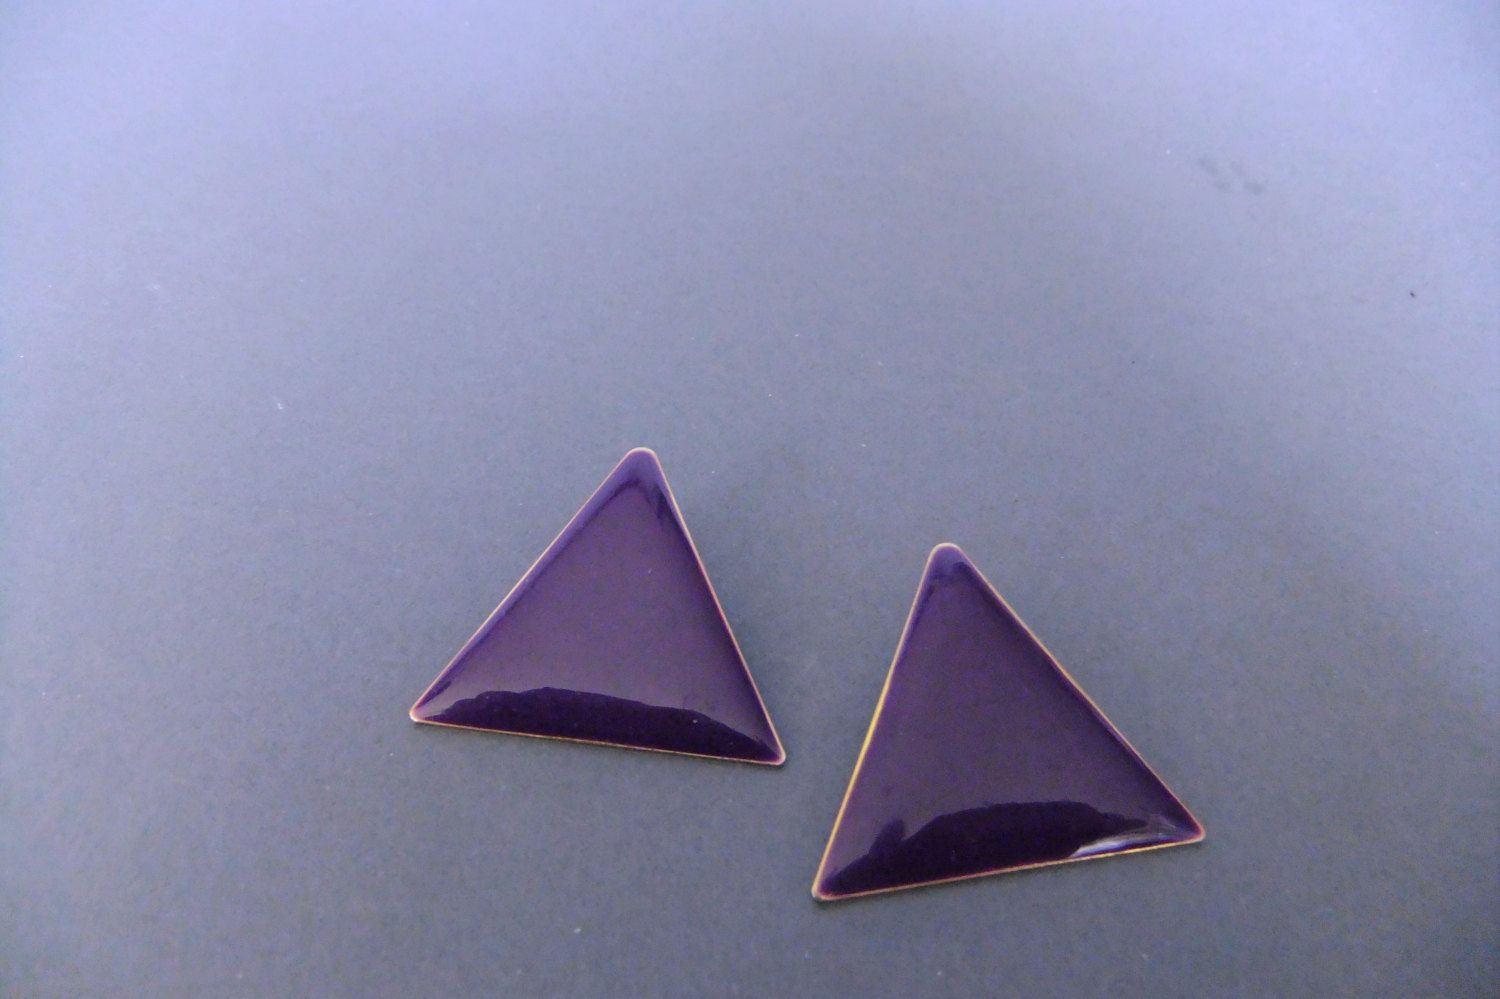 purple triangle earrings, vintage 70s earrings, studs, minimalist jewelry earrings, costume jewelry by vintage2049 on Etsy